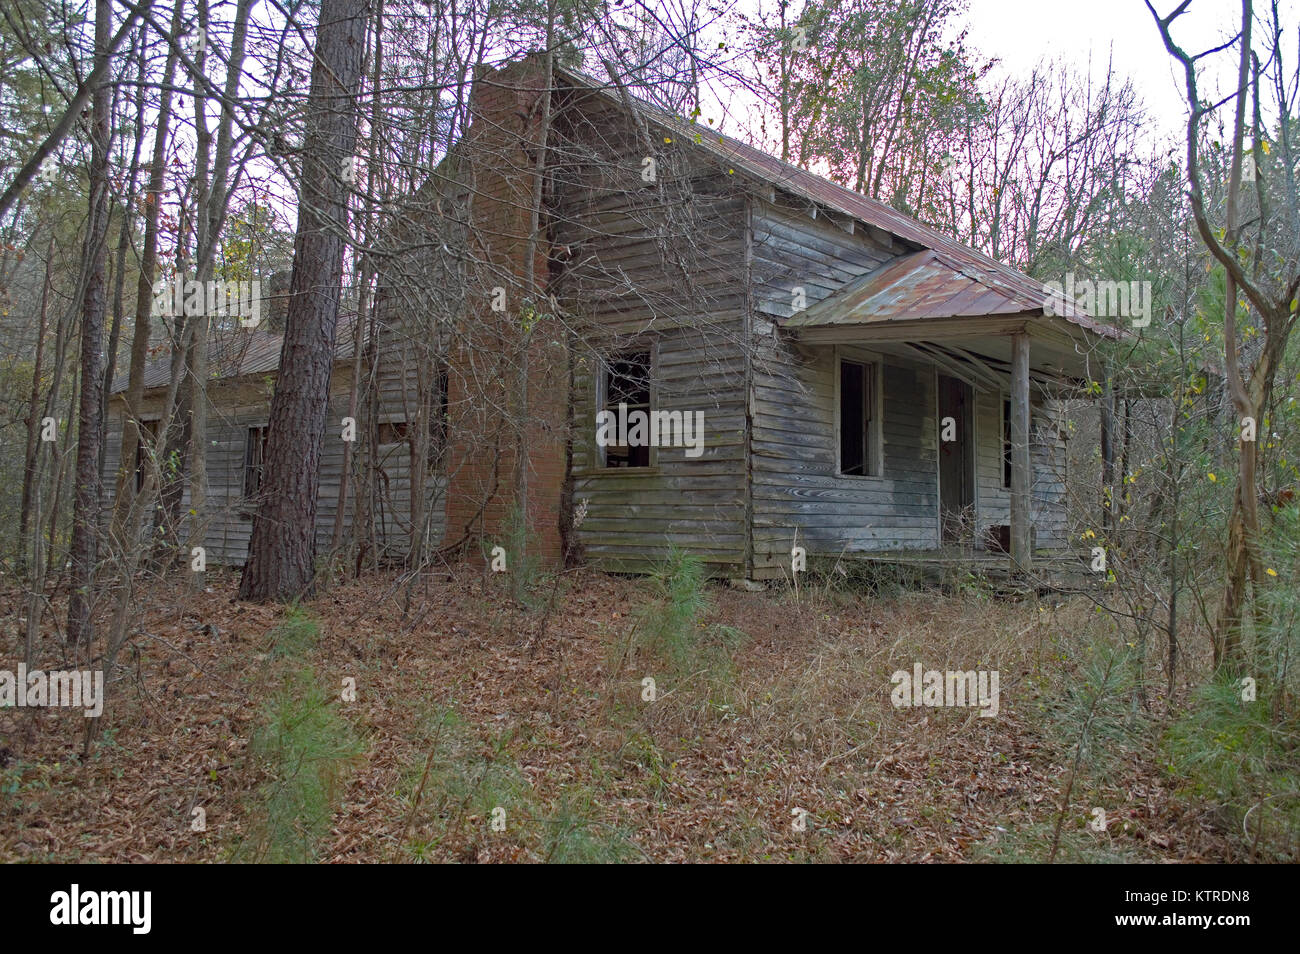 Old Rundown House In The Woods